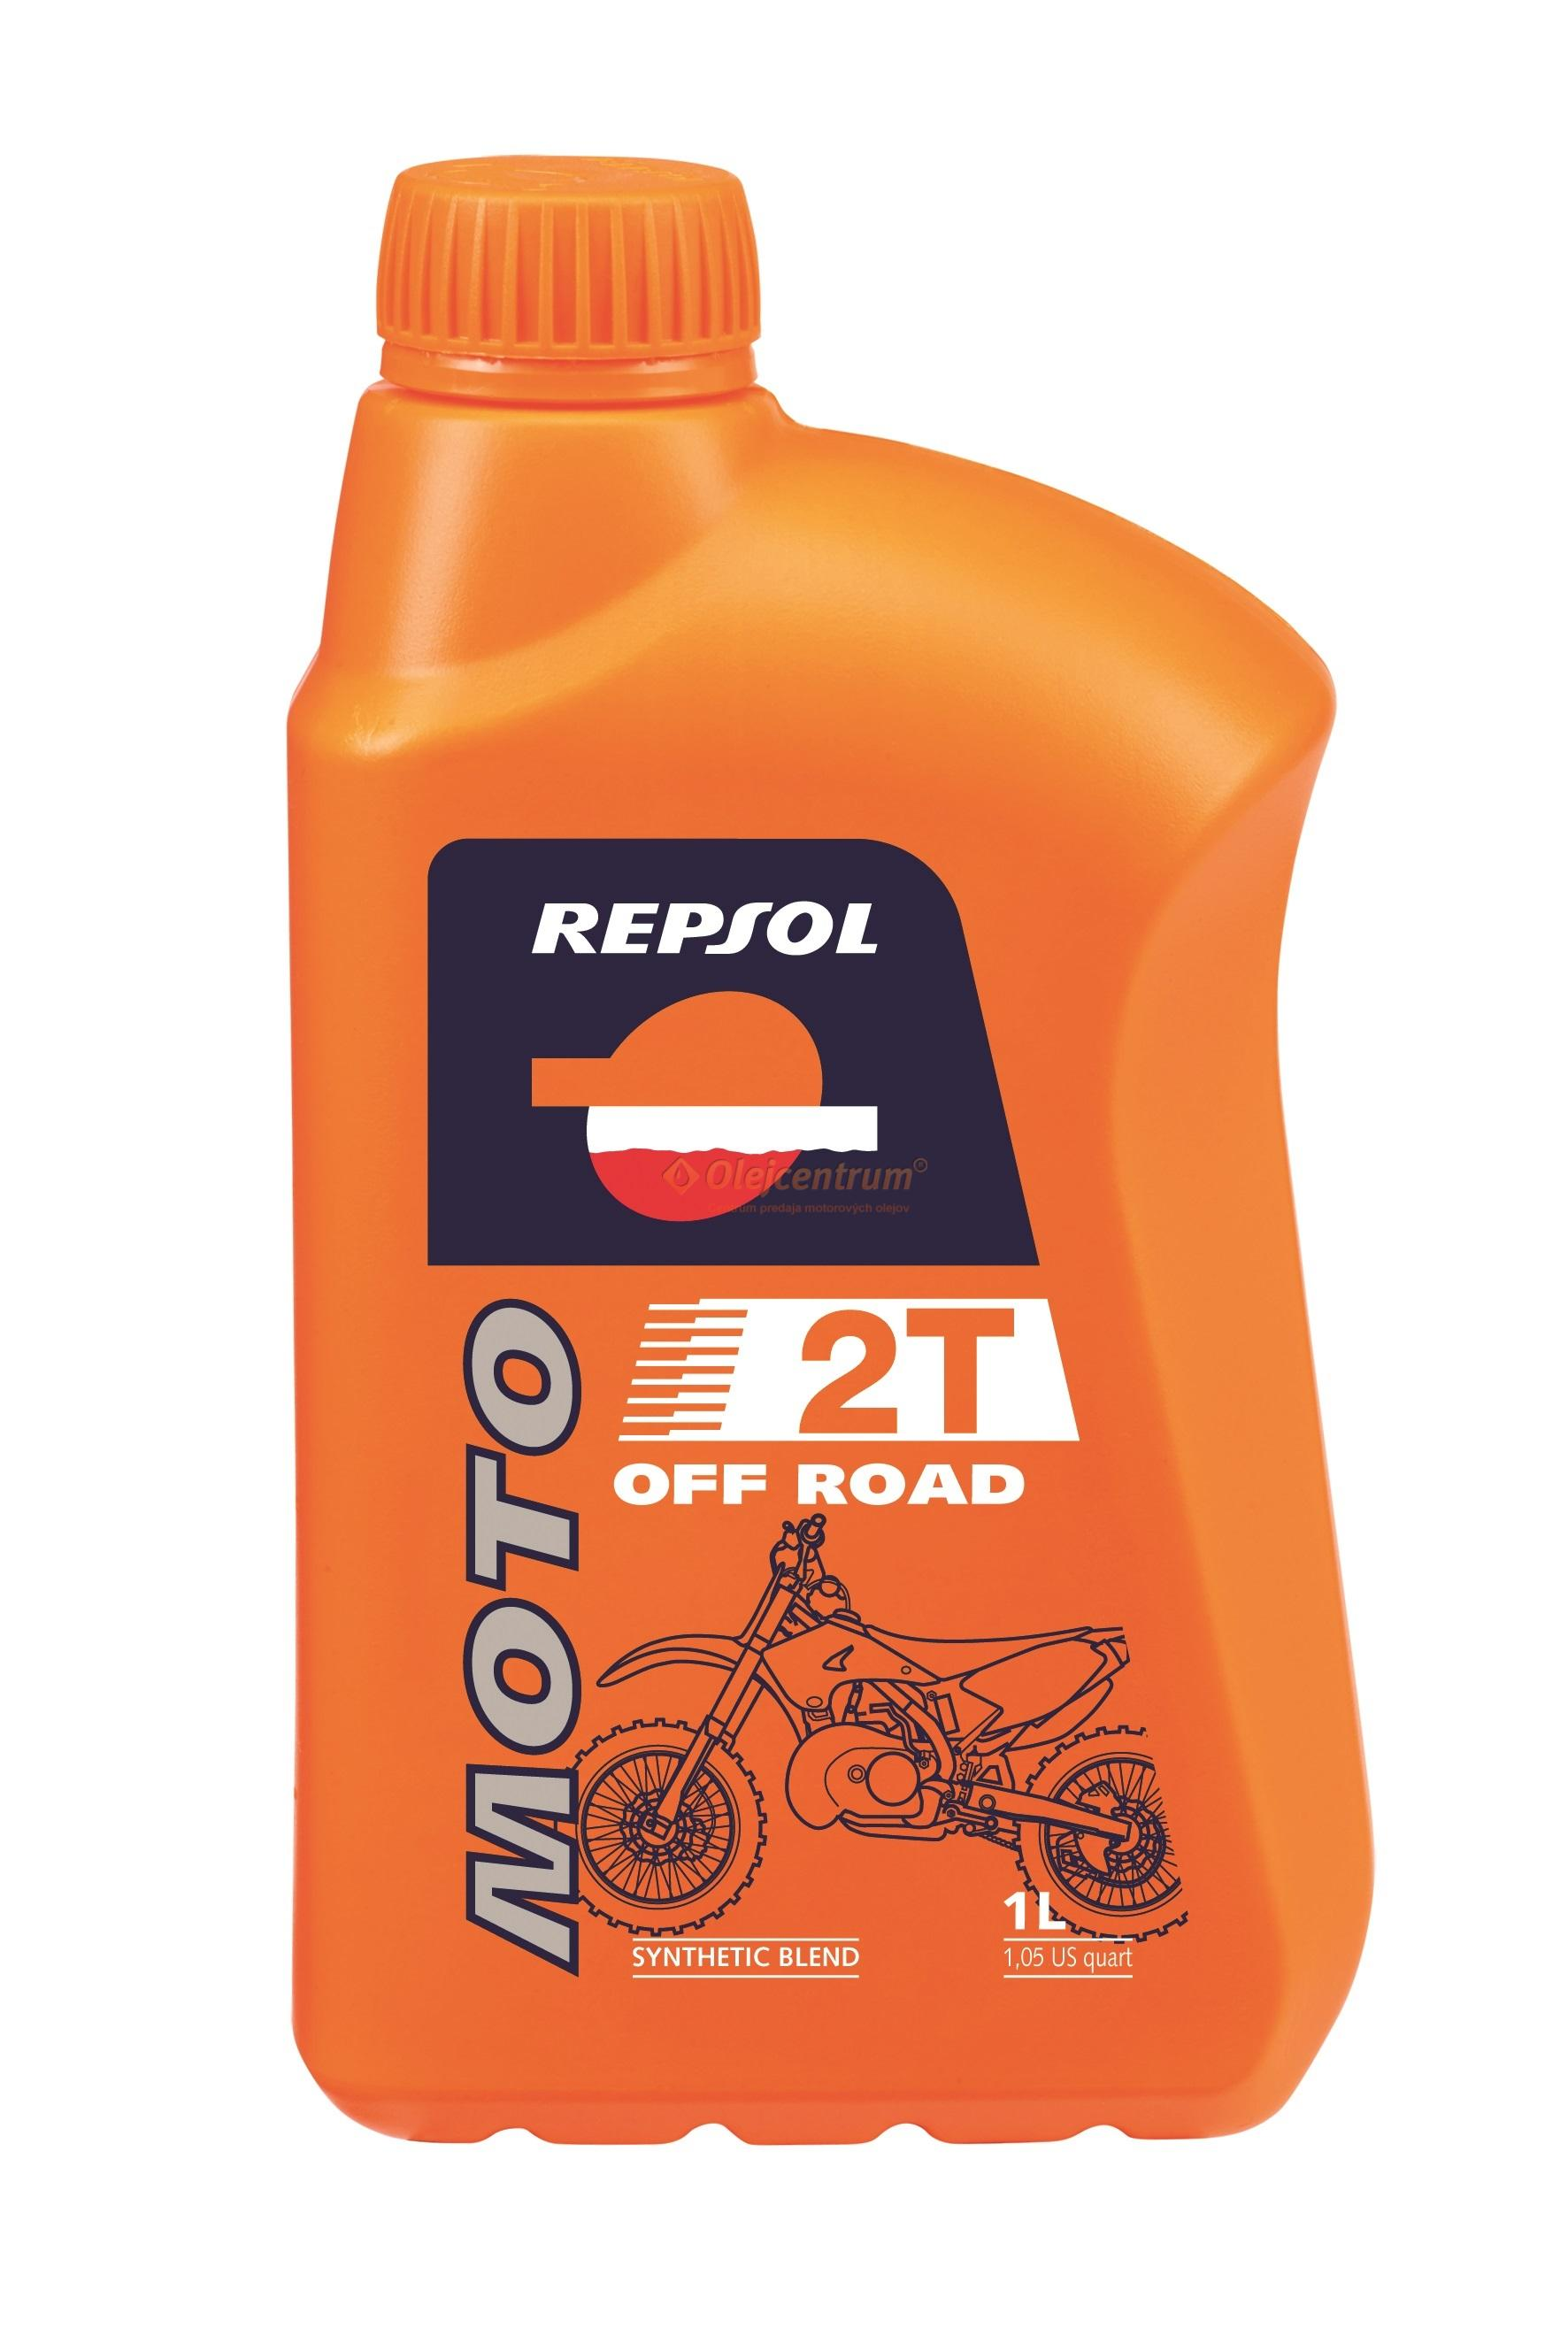 Repsol Off road 2T 1L